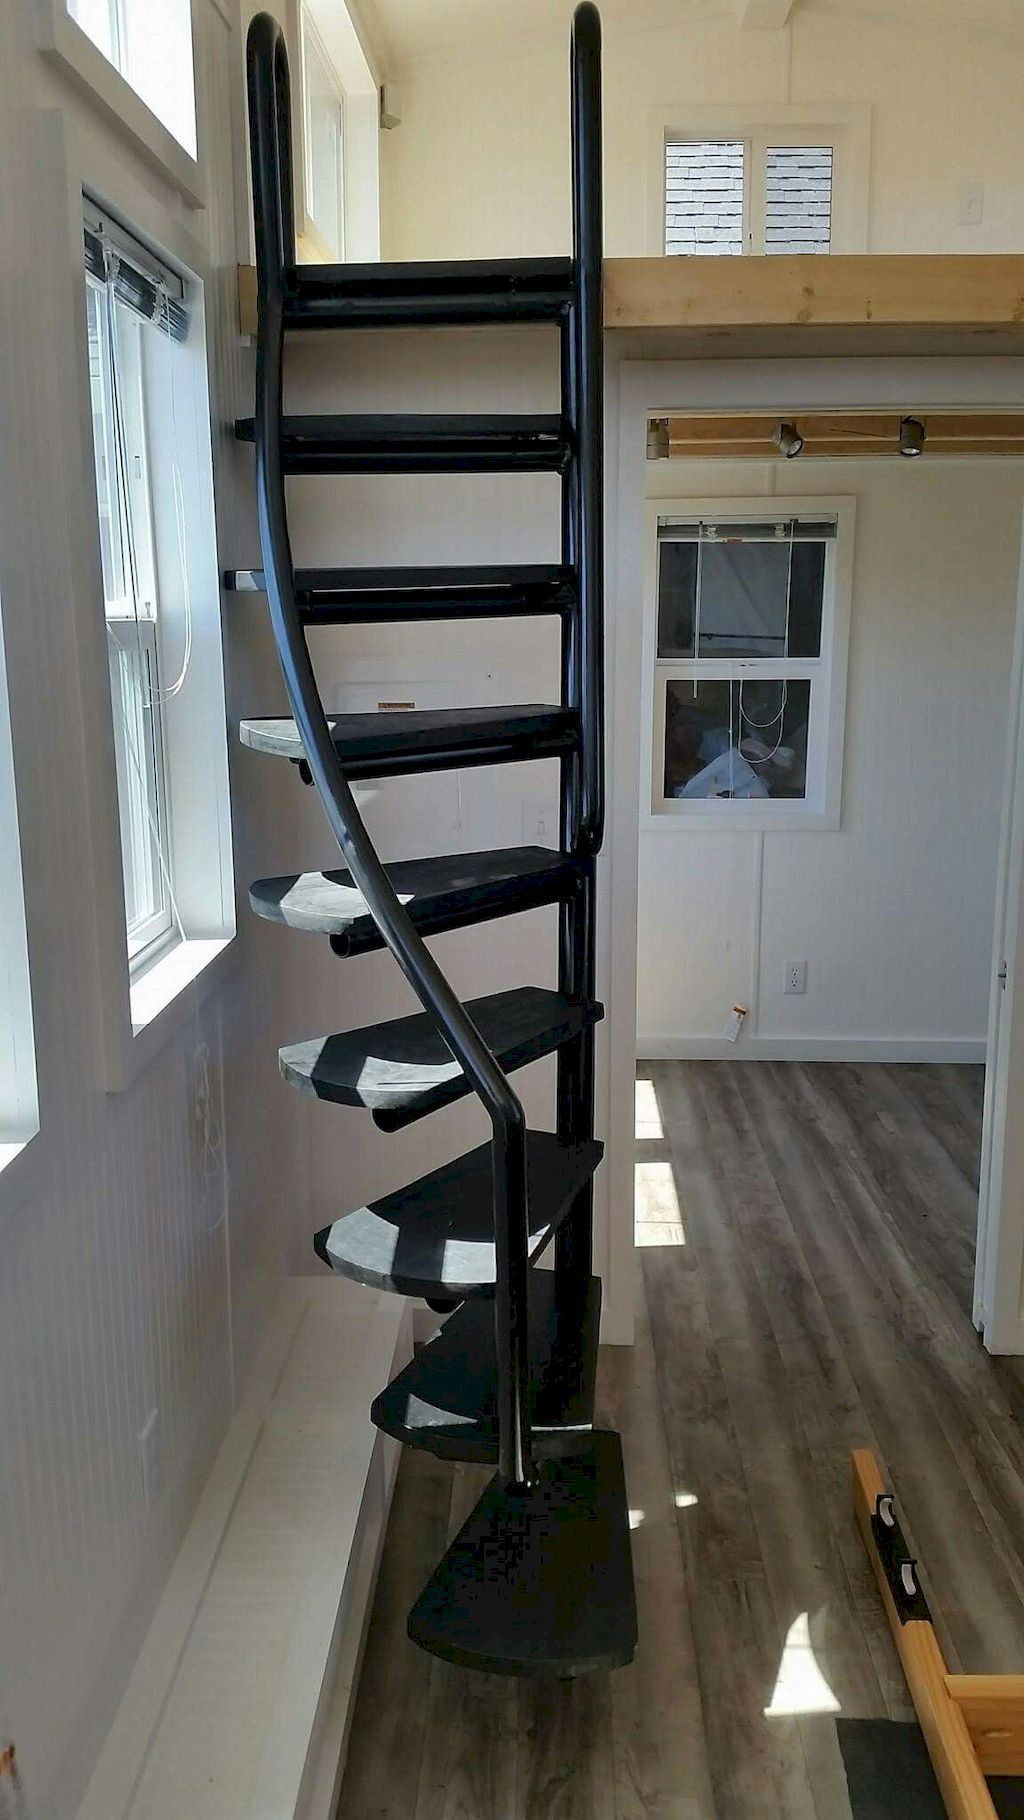 70 Amazing Loft Stair For Tiny House Ideas Homekover Attic Ladder Attic Staircase Attic Rooms